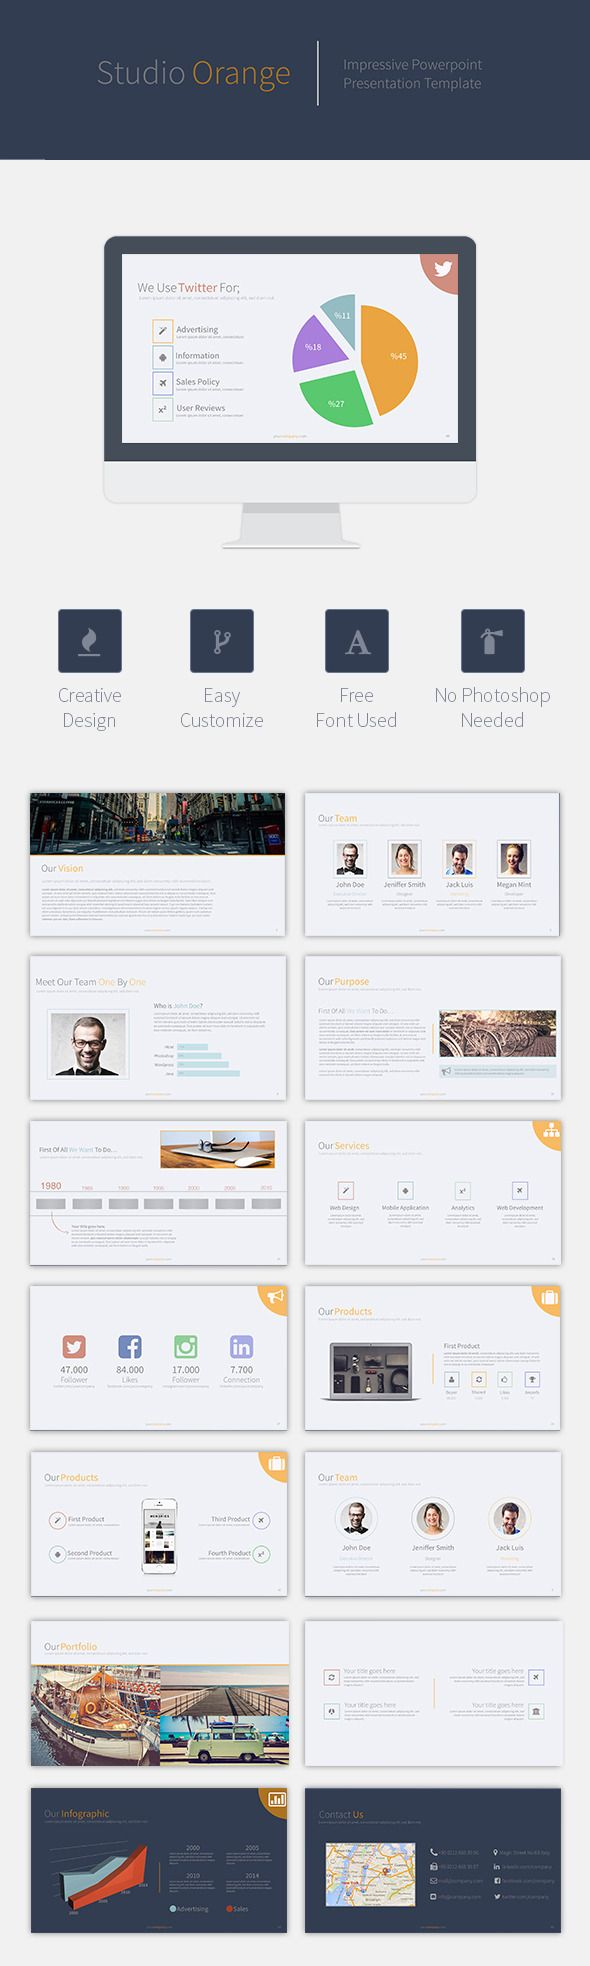 1763 best powerpoint template images on pinterest font logo buy orange studio powerpoint template by beckett on graphicriver general description creative slides free font used easy customize animated screen size toneelgroepblik Images